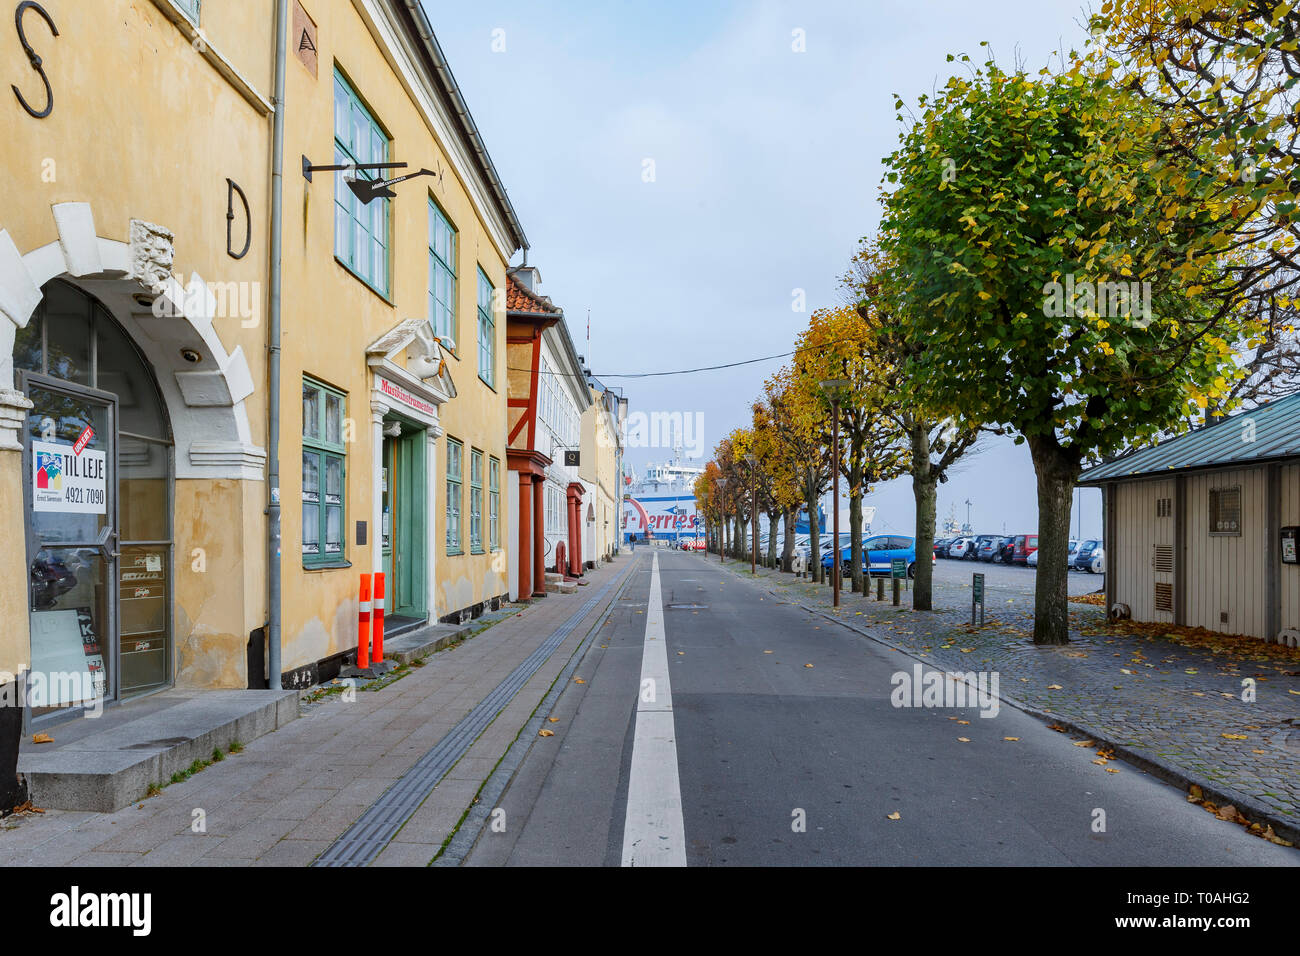 Municipality, NOV 1: Beautiful cityscape around Elsinore on NOV 1, 2015 at Municipality, Denmark - Stock Image